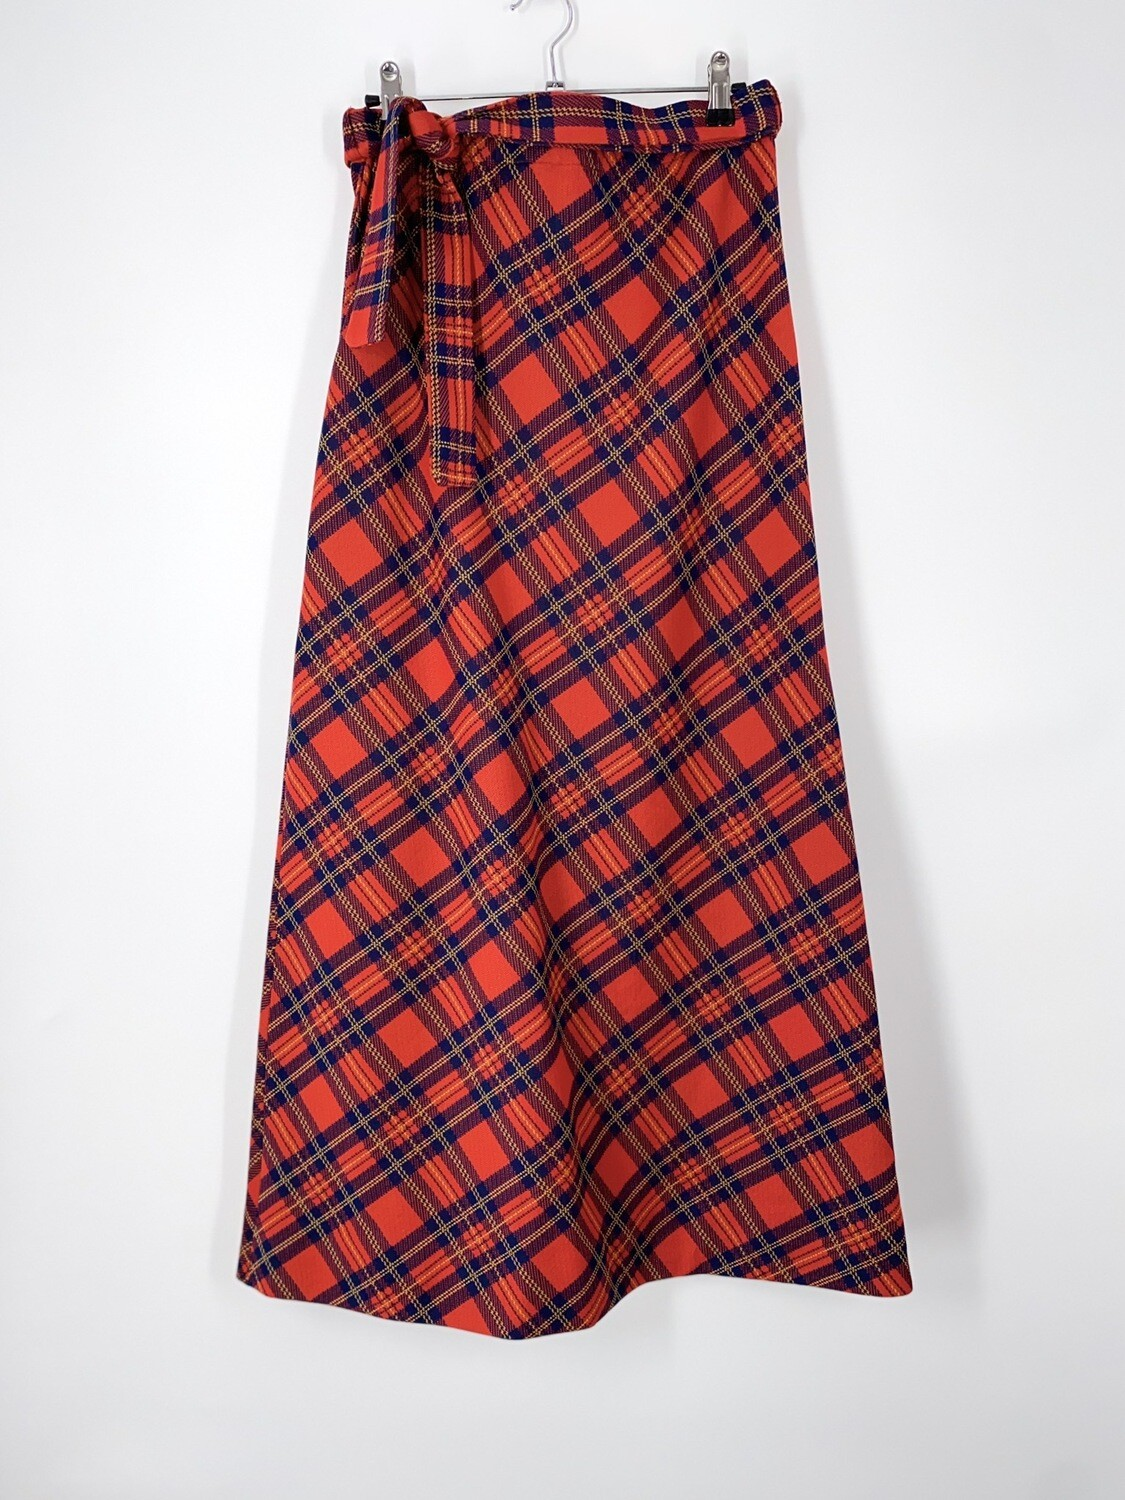 Plaid Belted Maxi Skirt Size S